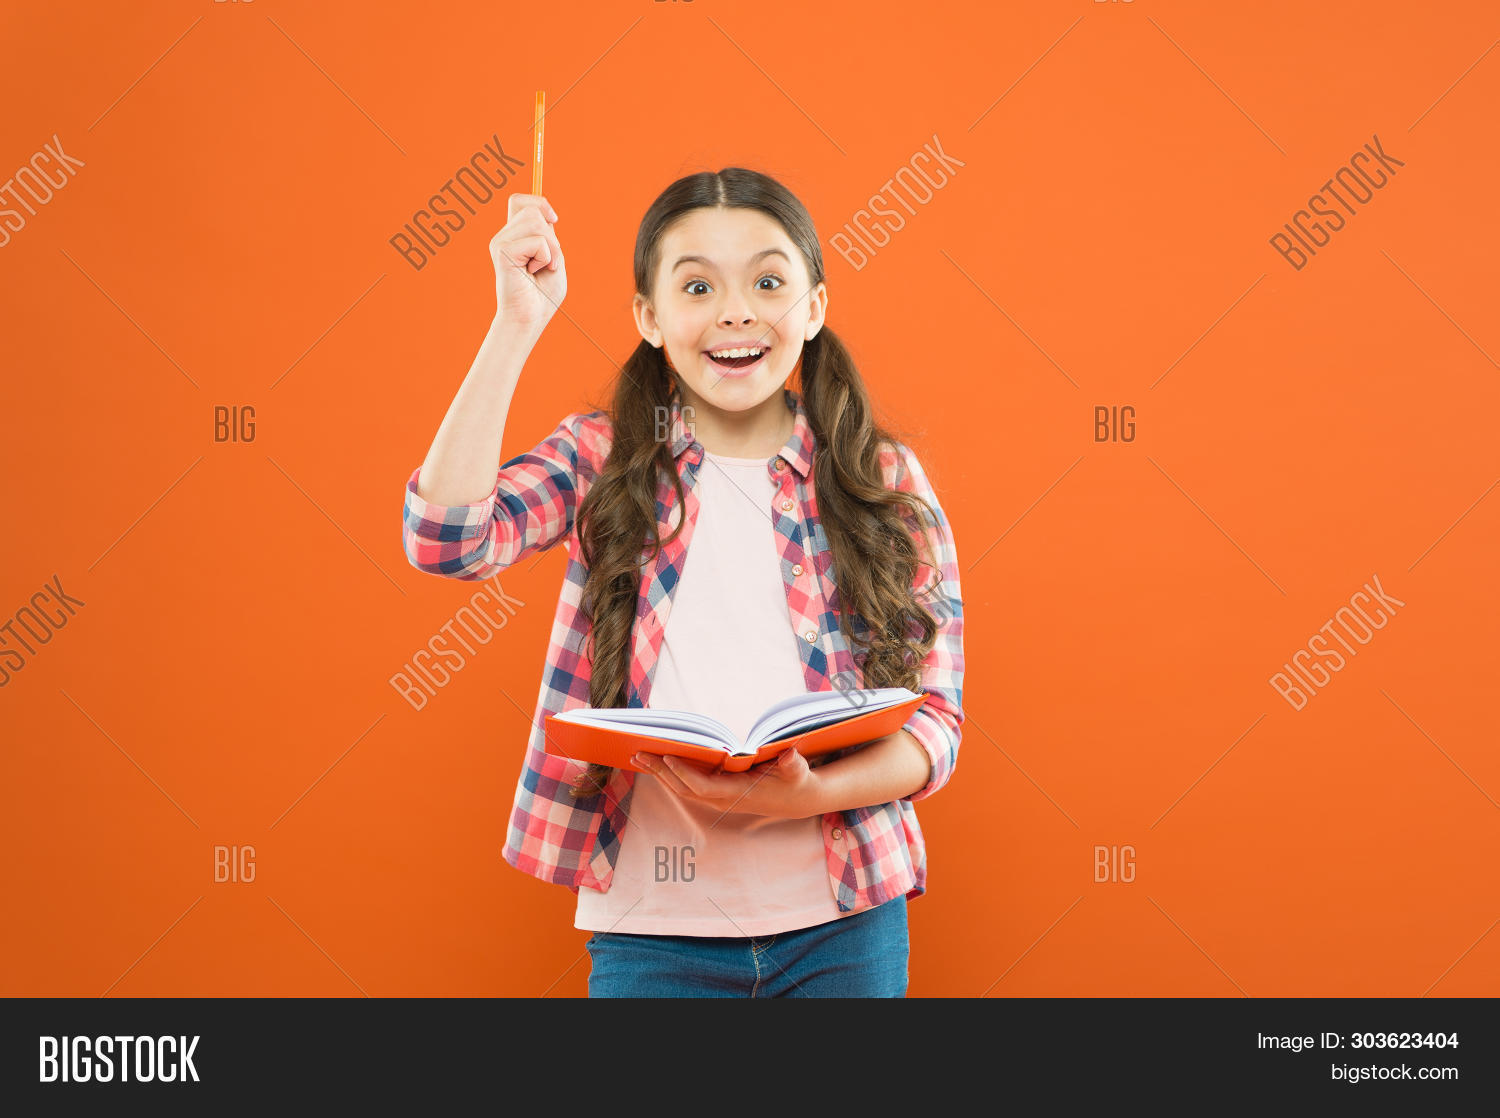 baby,background,book,child,childhood,clever,color,concept,cute,decision,english,girl,guess,hypothesis,idea,insight,journalist,kid,knowledge,lecture,lesson,literature,little,message,orange,plan,problem,pupil,schoolgirl,skills,small,smart,startup,story,student,study,studying,text,theory,think,thought,write,writer,writing